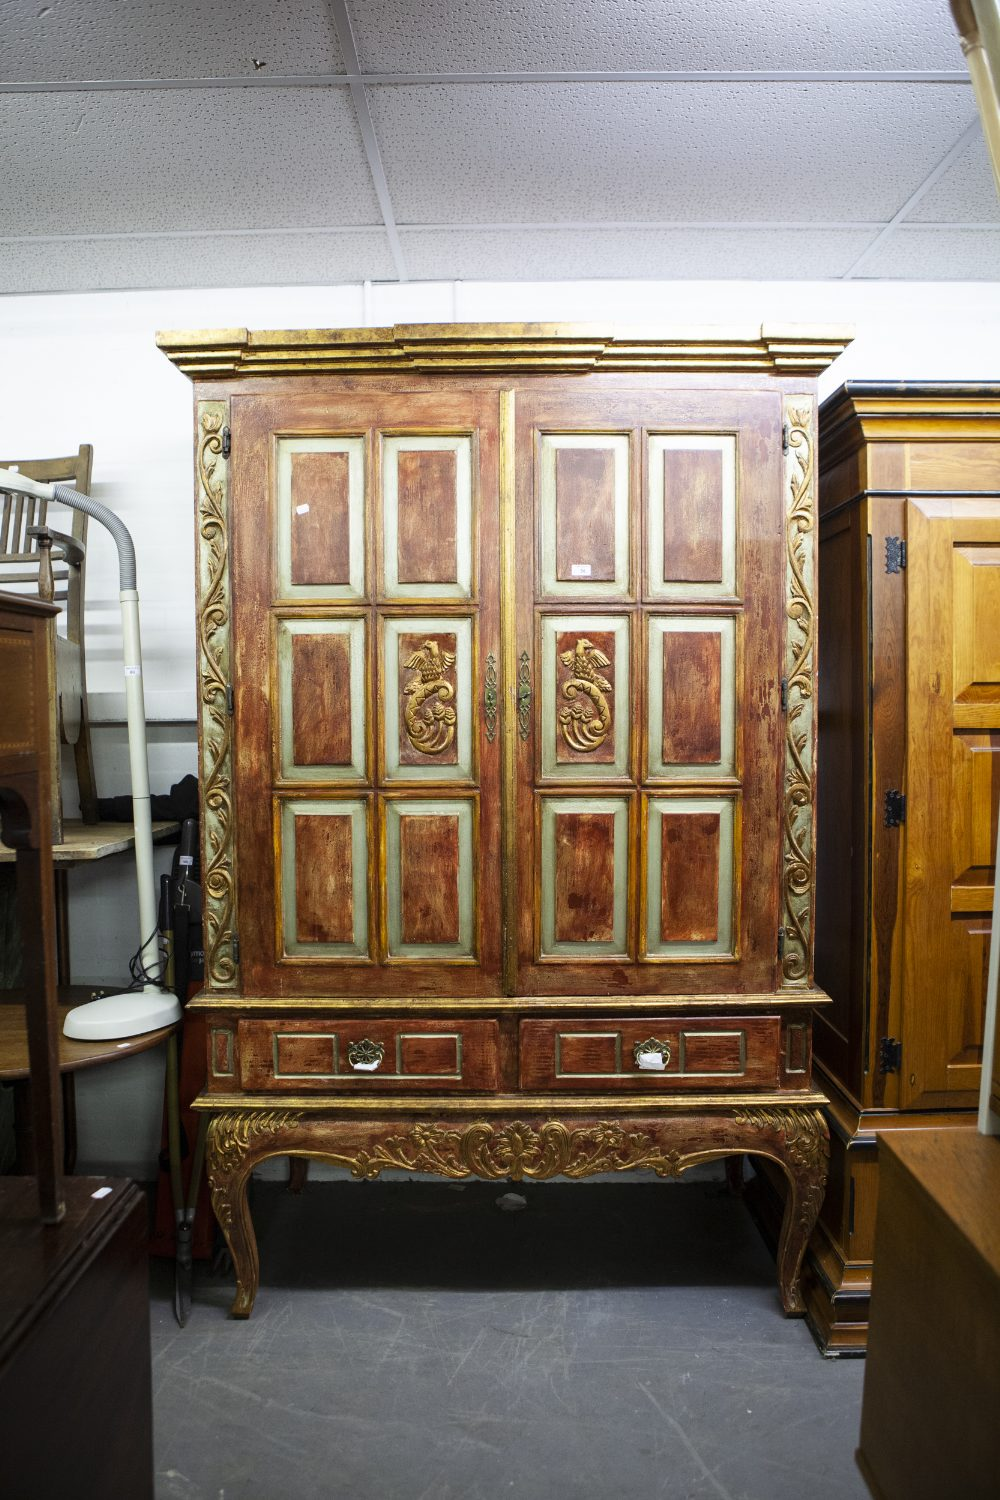 Lot 56 - A LARGE RED AND GILT DECORATED CONTINENTAL CABINET ON STAND, WITH DRAGON MOTIF TO EACH DOOR AND